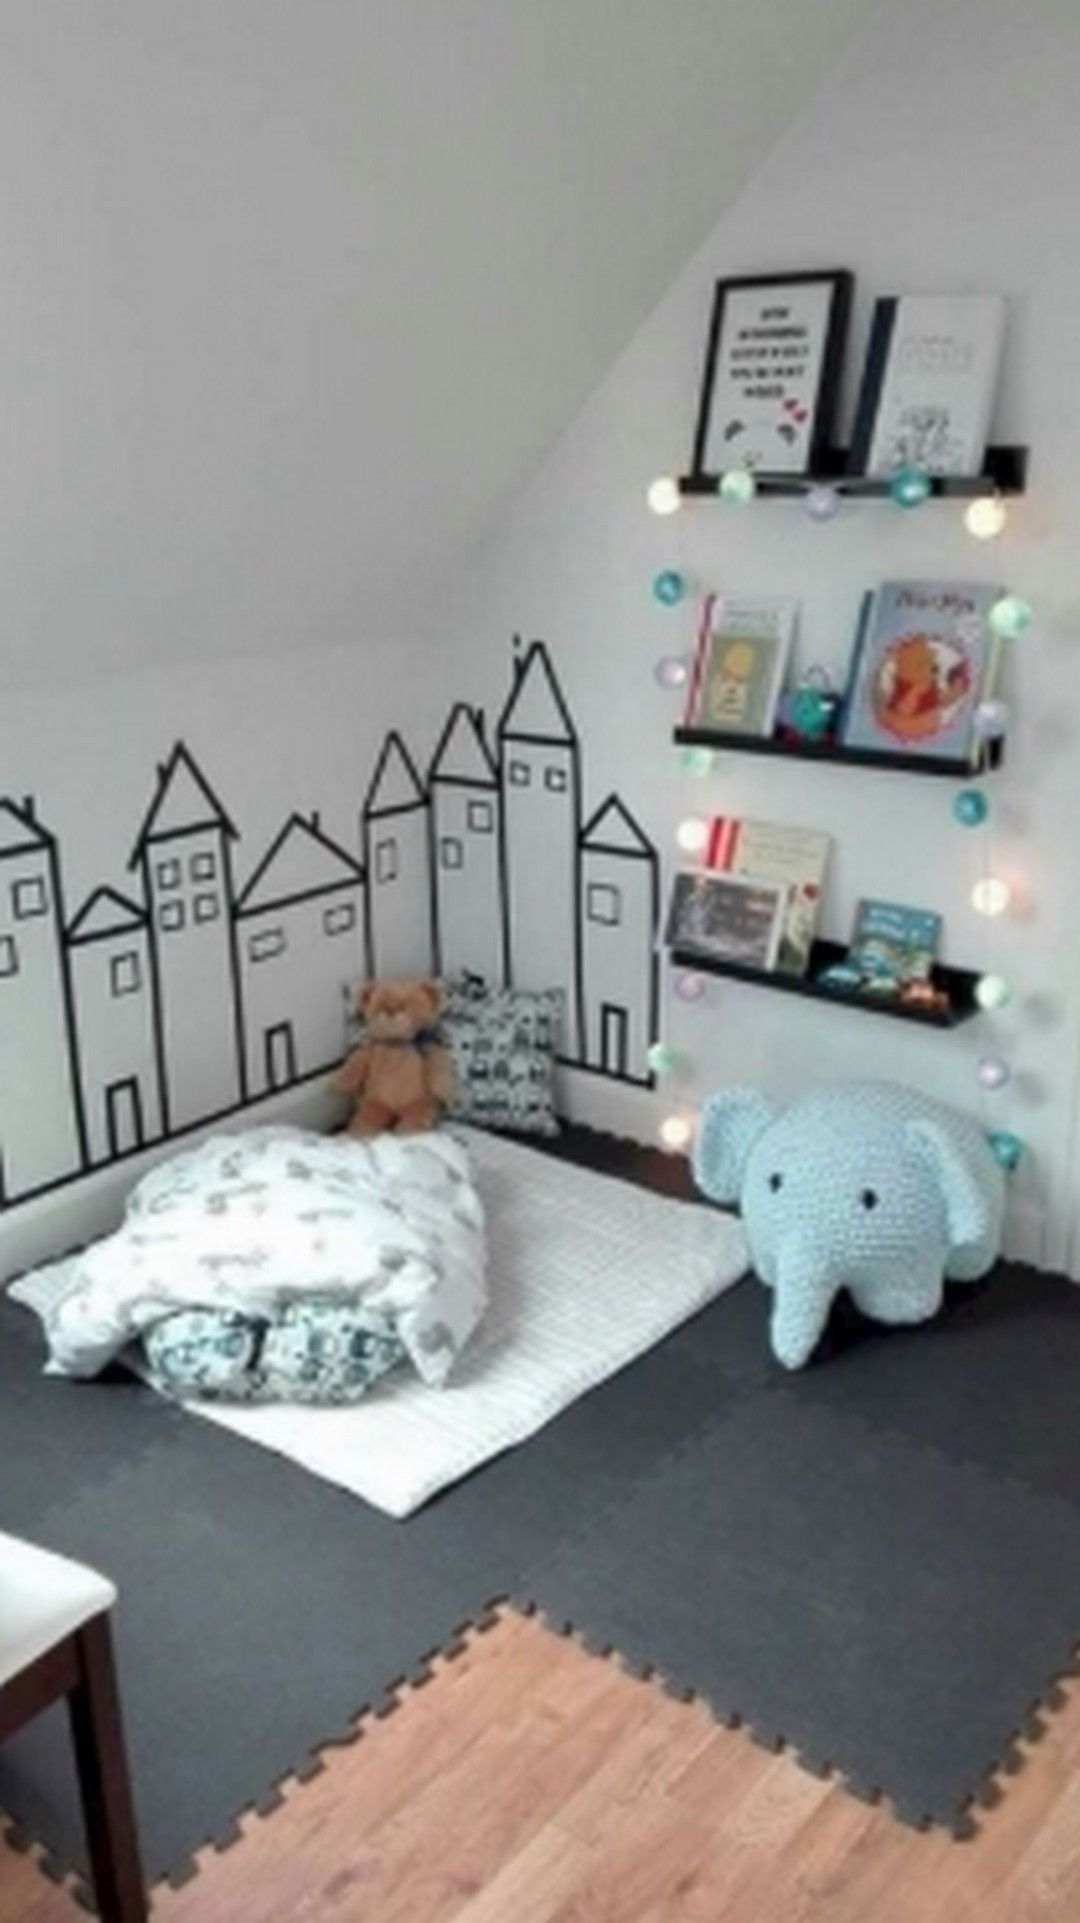 Interior Elephant Chair For Children Room 1 In 2020 Kid Room